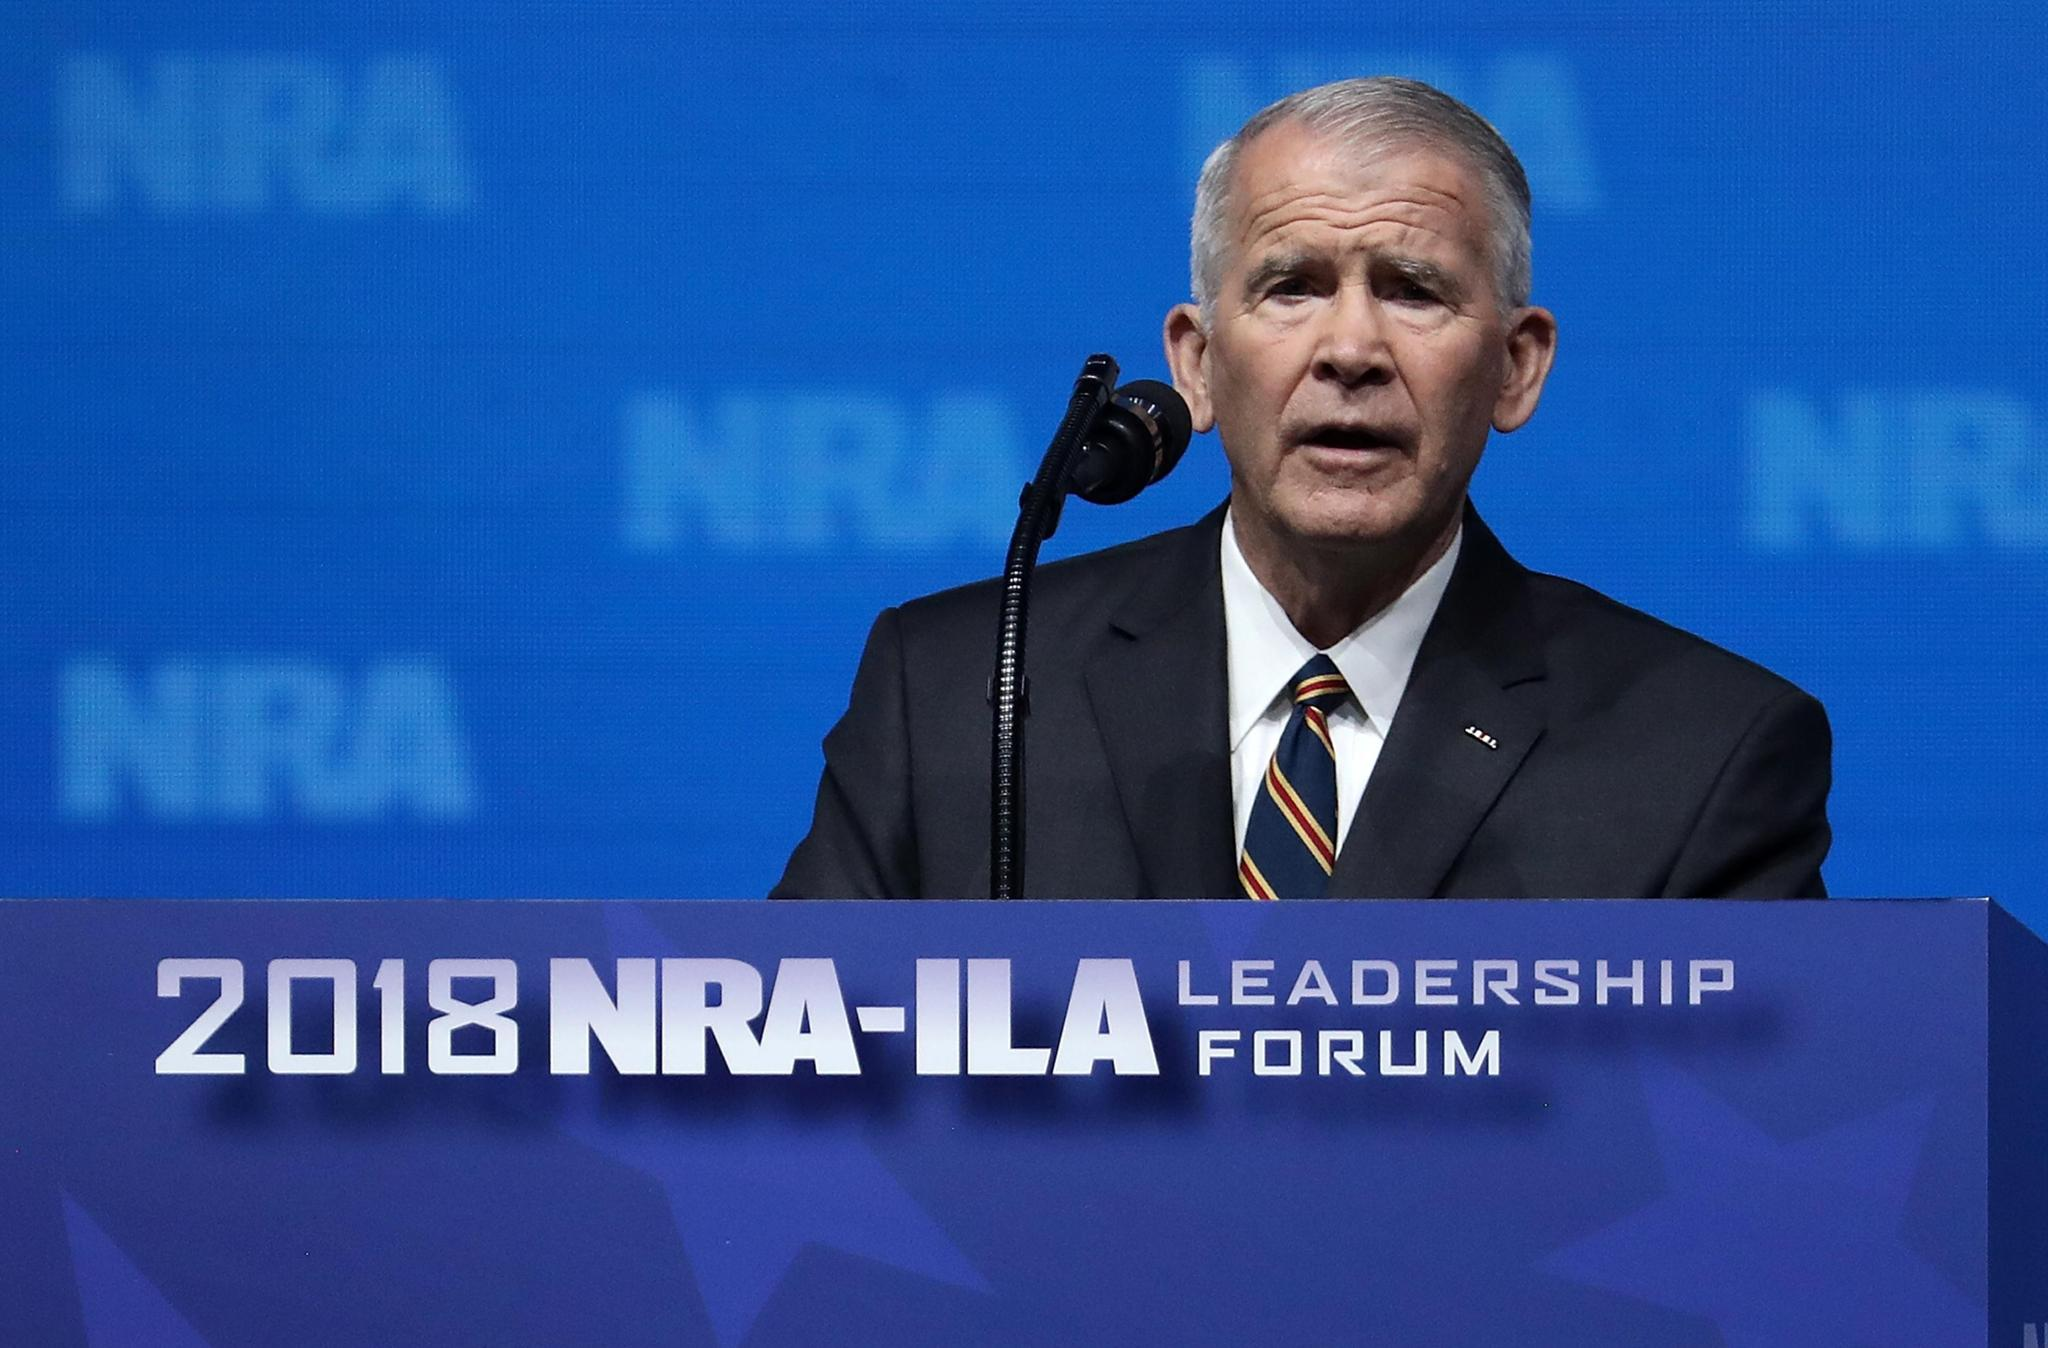 """New NRA President Oliver North blames school shootings on Ritalin, """"culture of violence."""" https://t.co/kZWPXCeTtD https://t.co/TAlA51vVIt"""